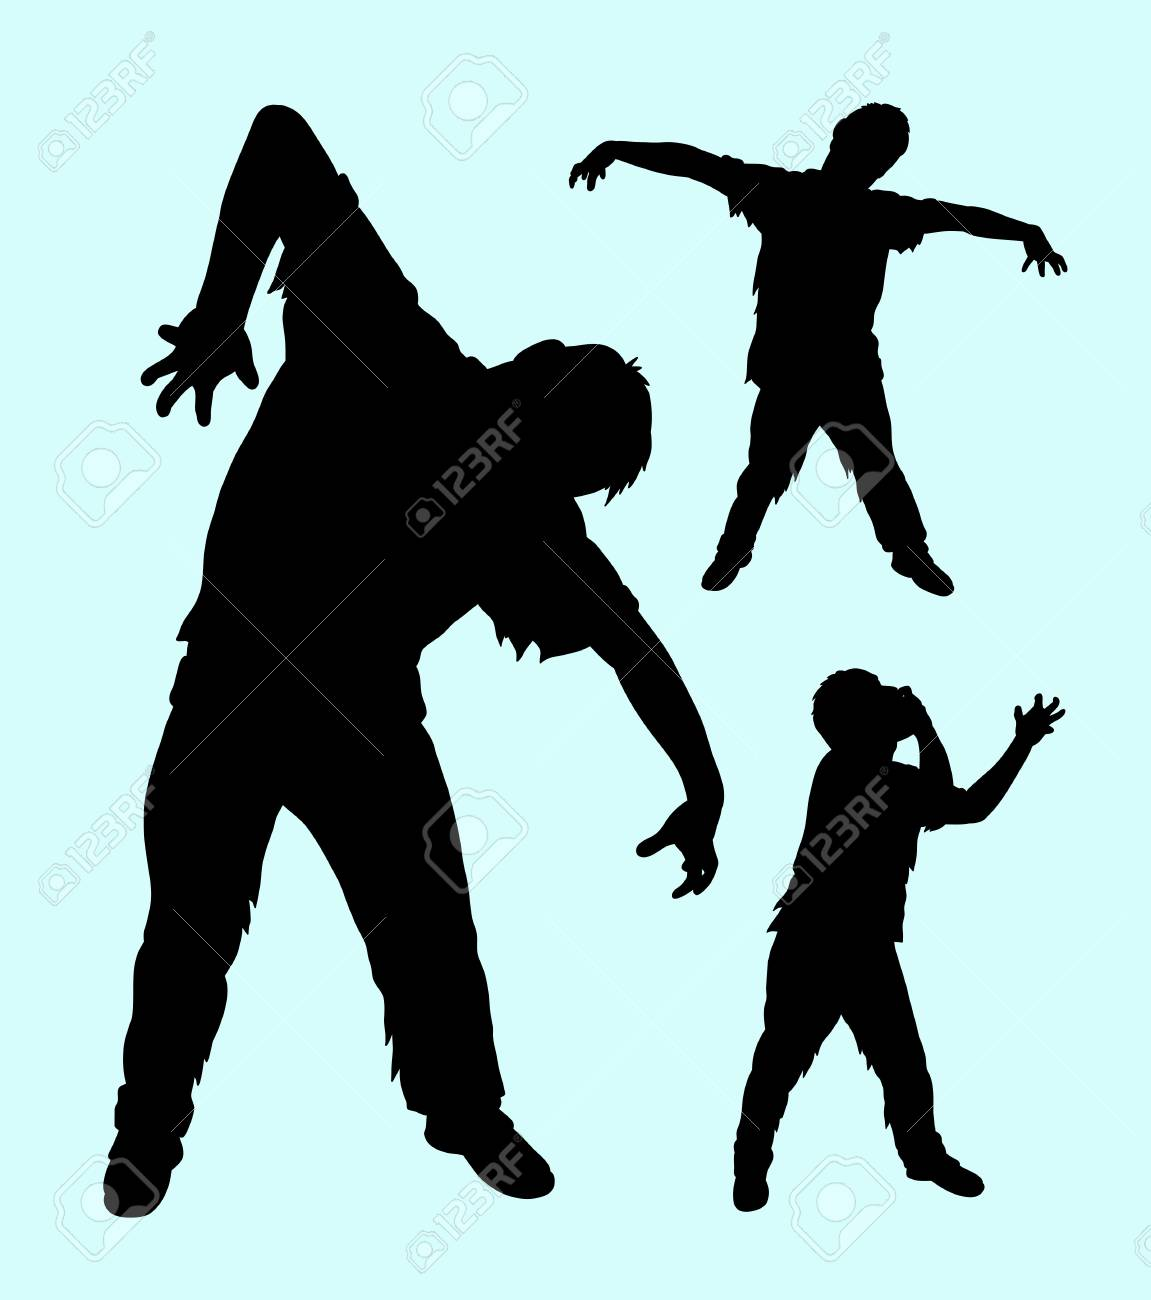 72ac79b4c3f Vector - Zombie horror male action silhouette. Good use for any design you  want. Easy to use or edit